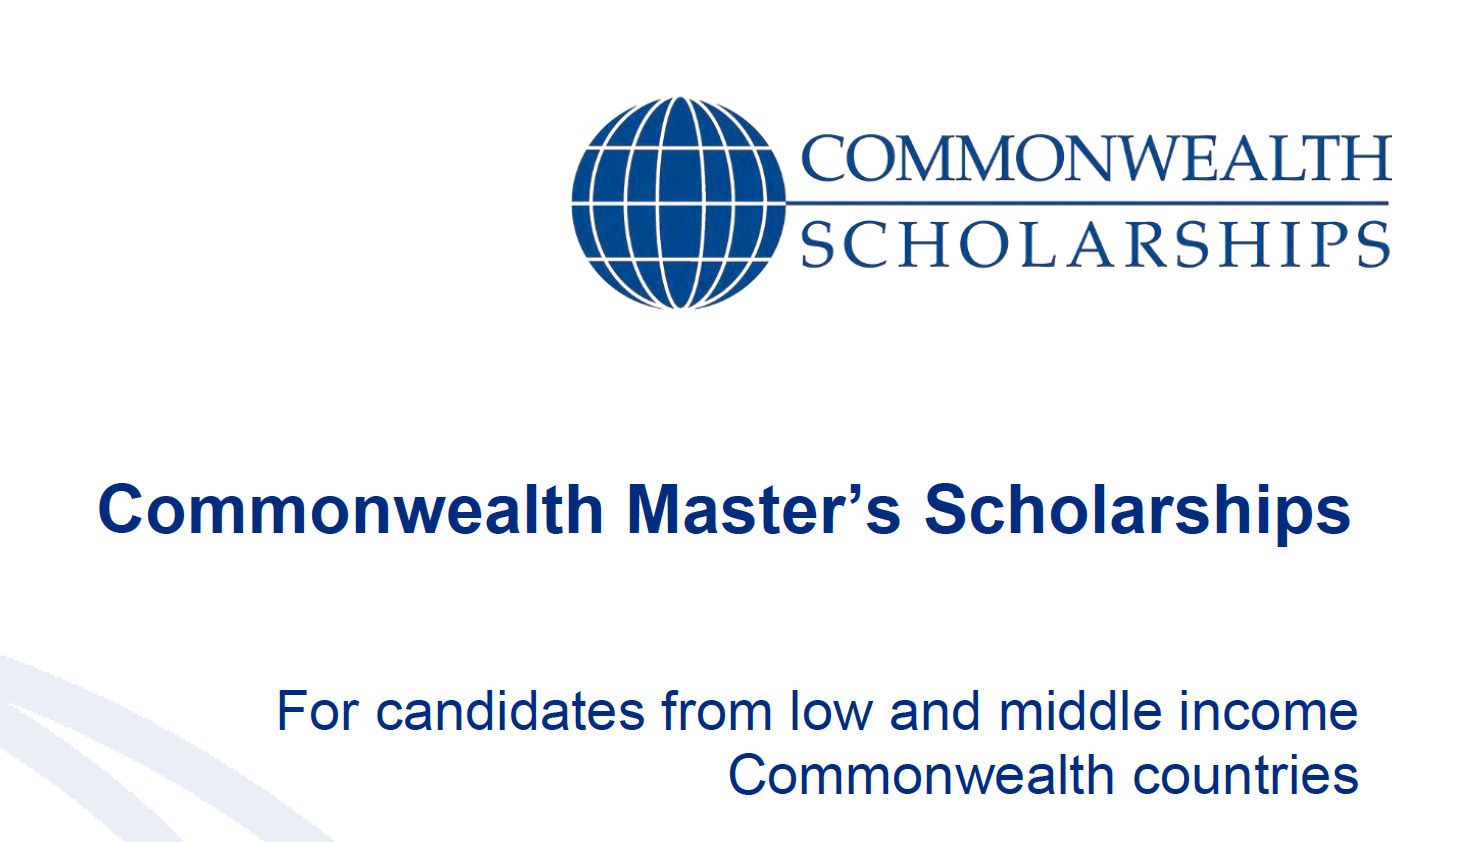 Commonwealth Master's Scholarships